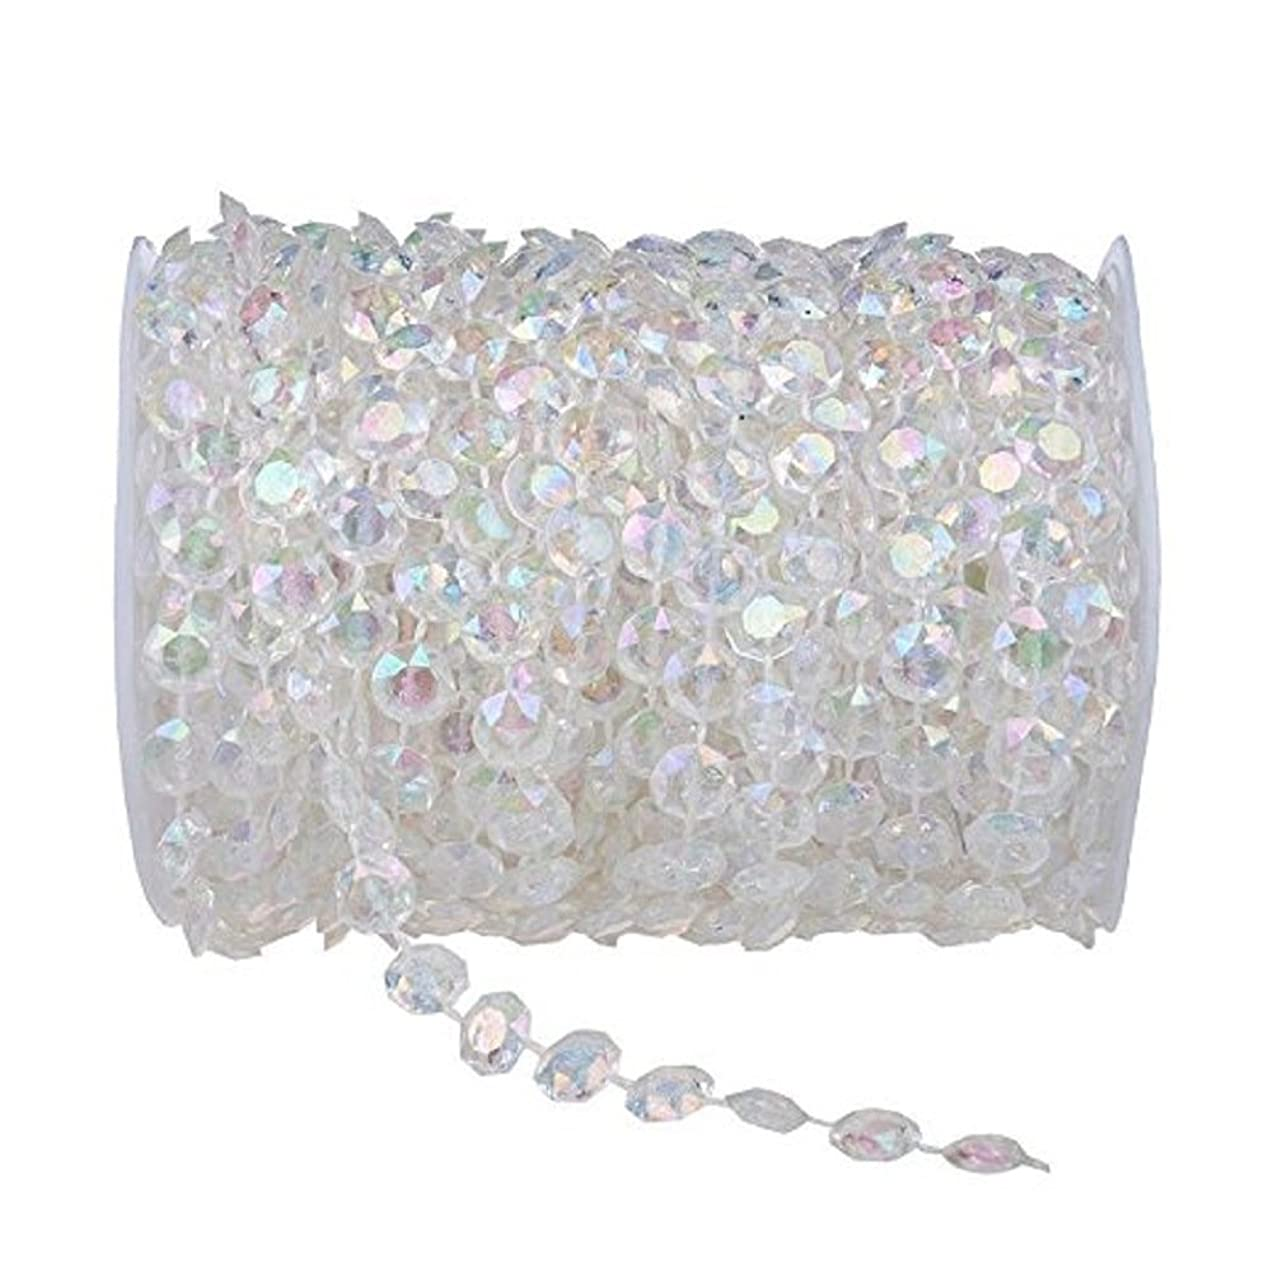 Meihuasheng 99FT(30M) Acrylic Diamond Garland Strands Crystal Beads Curtain Wedding DIY Party Decor